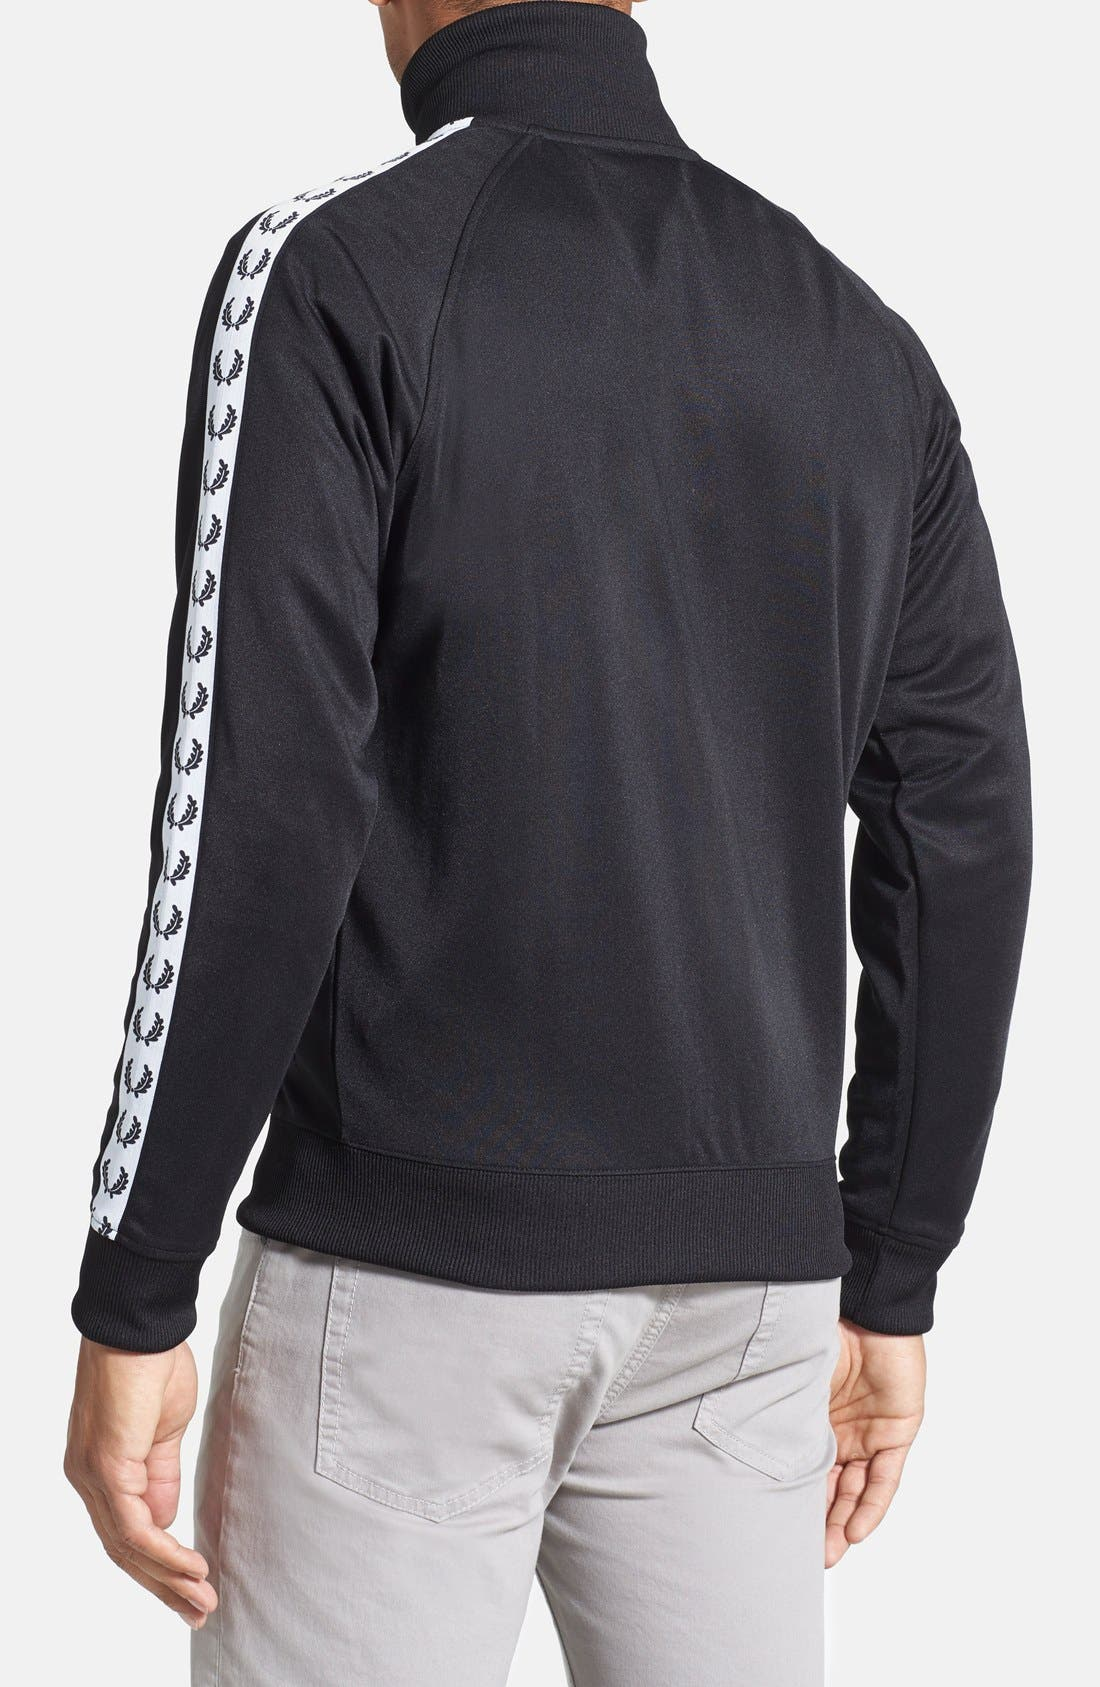 FRED PERRY,                             Laurel Tape Track Jacket,                             Alternate thumbnail 8, color,                             002